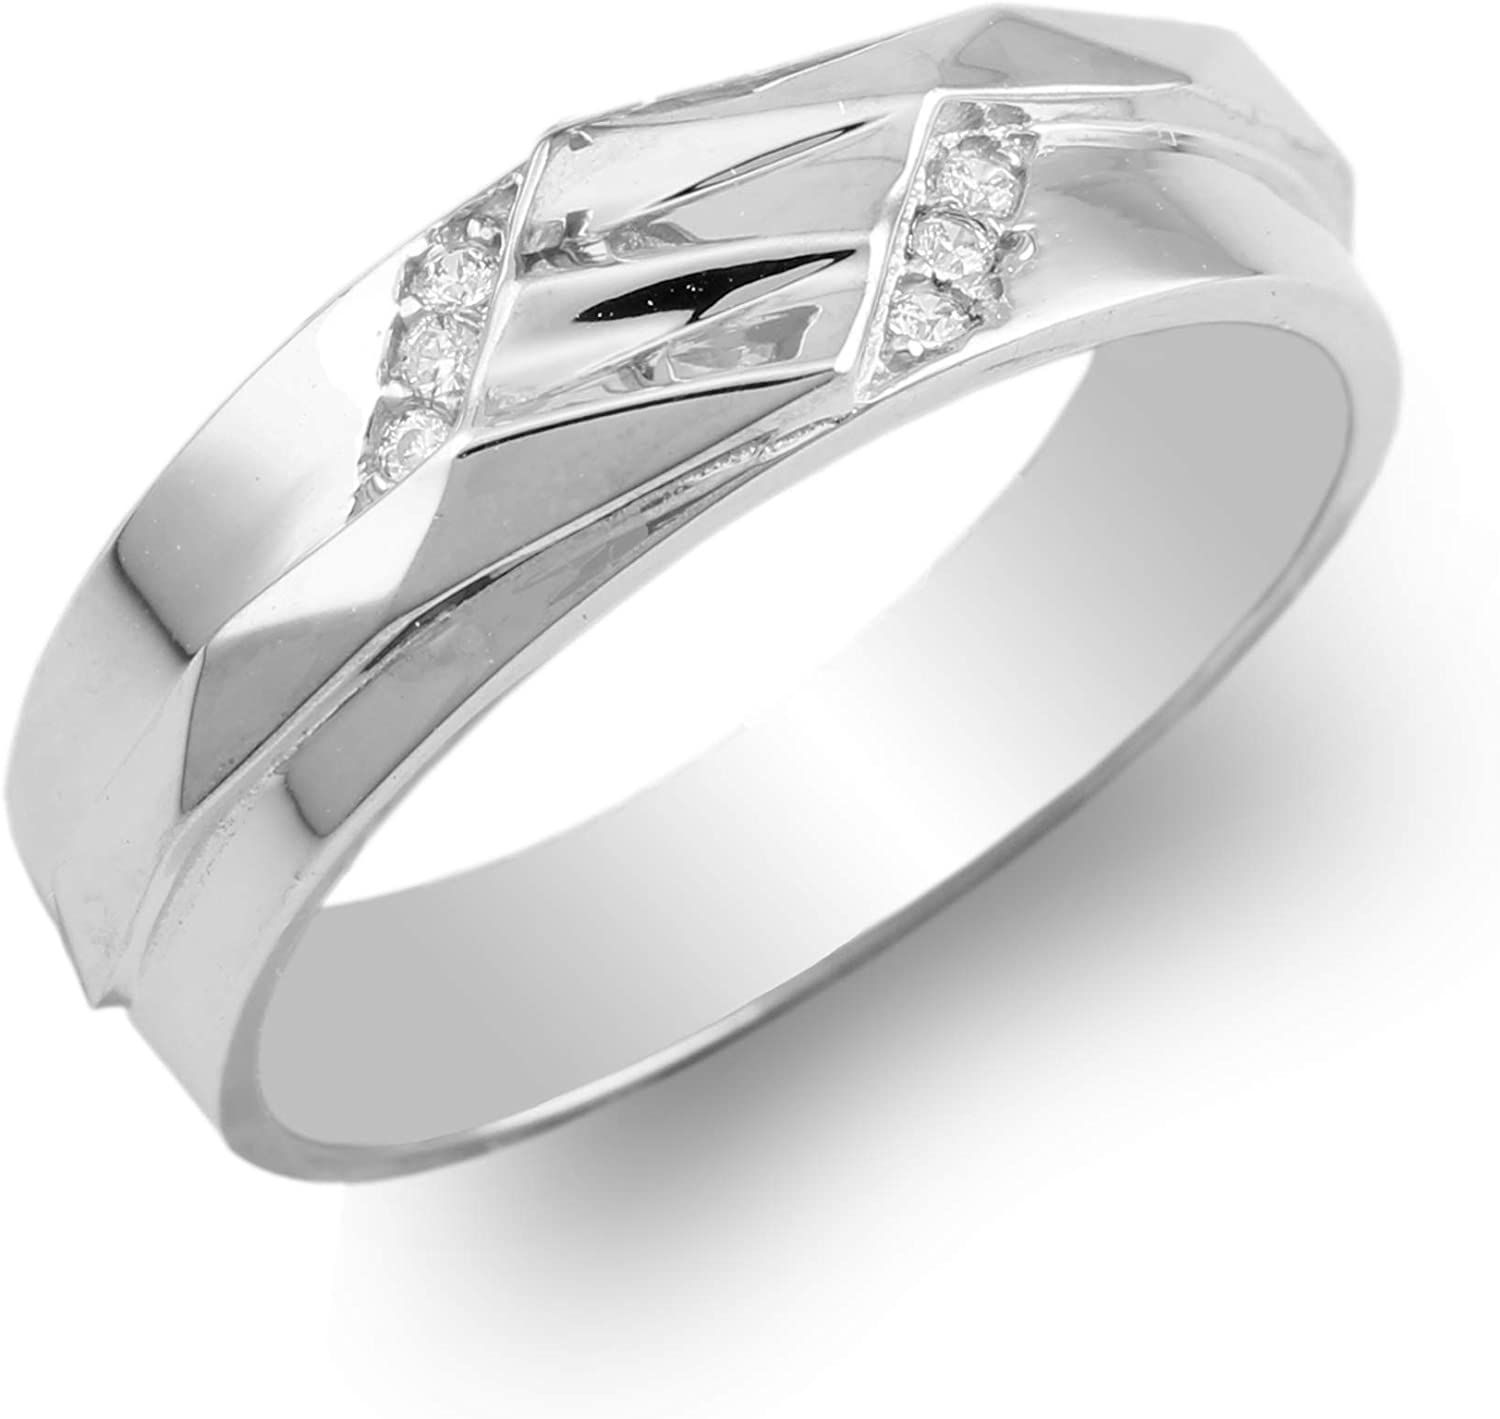 JamesJenny Ladies Directly managed store 925 Sterling NEW before selling Silver Design Weddi Unique Simple